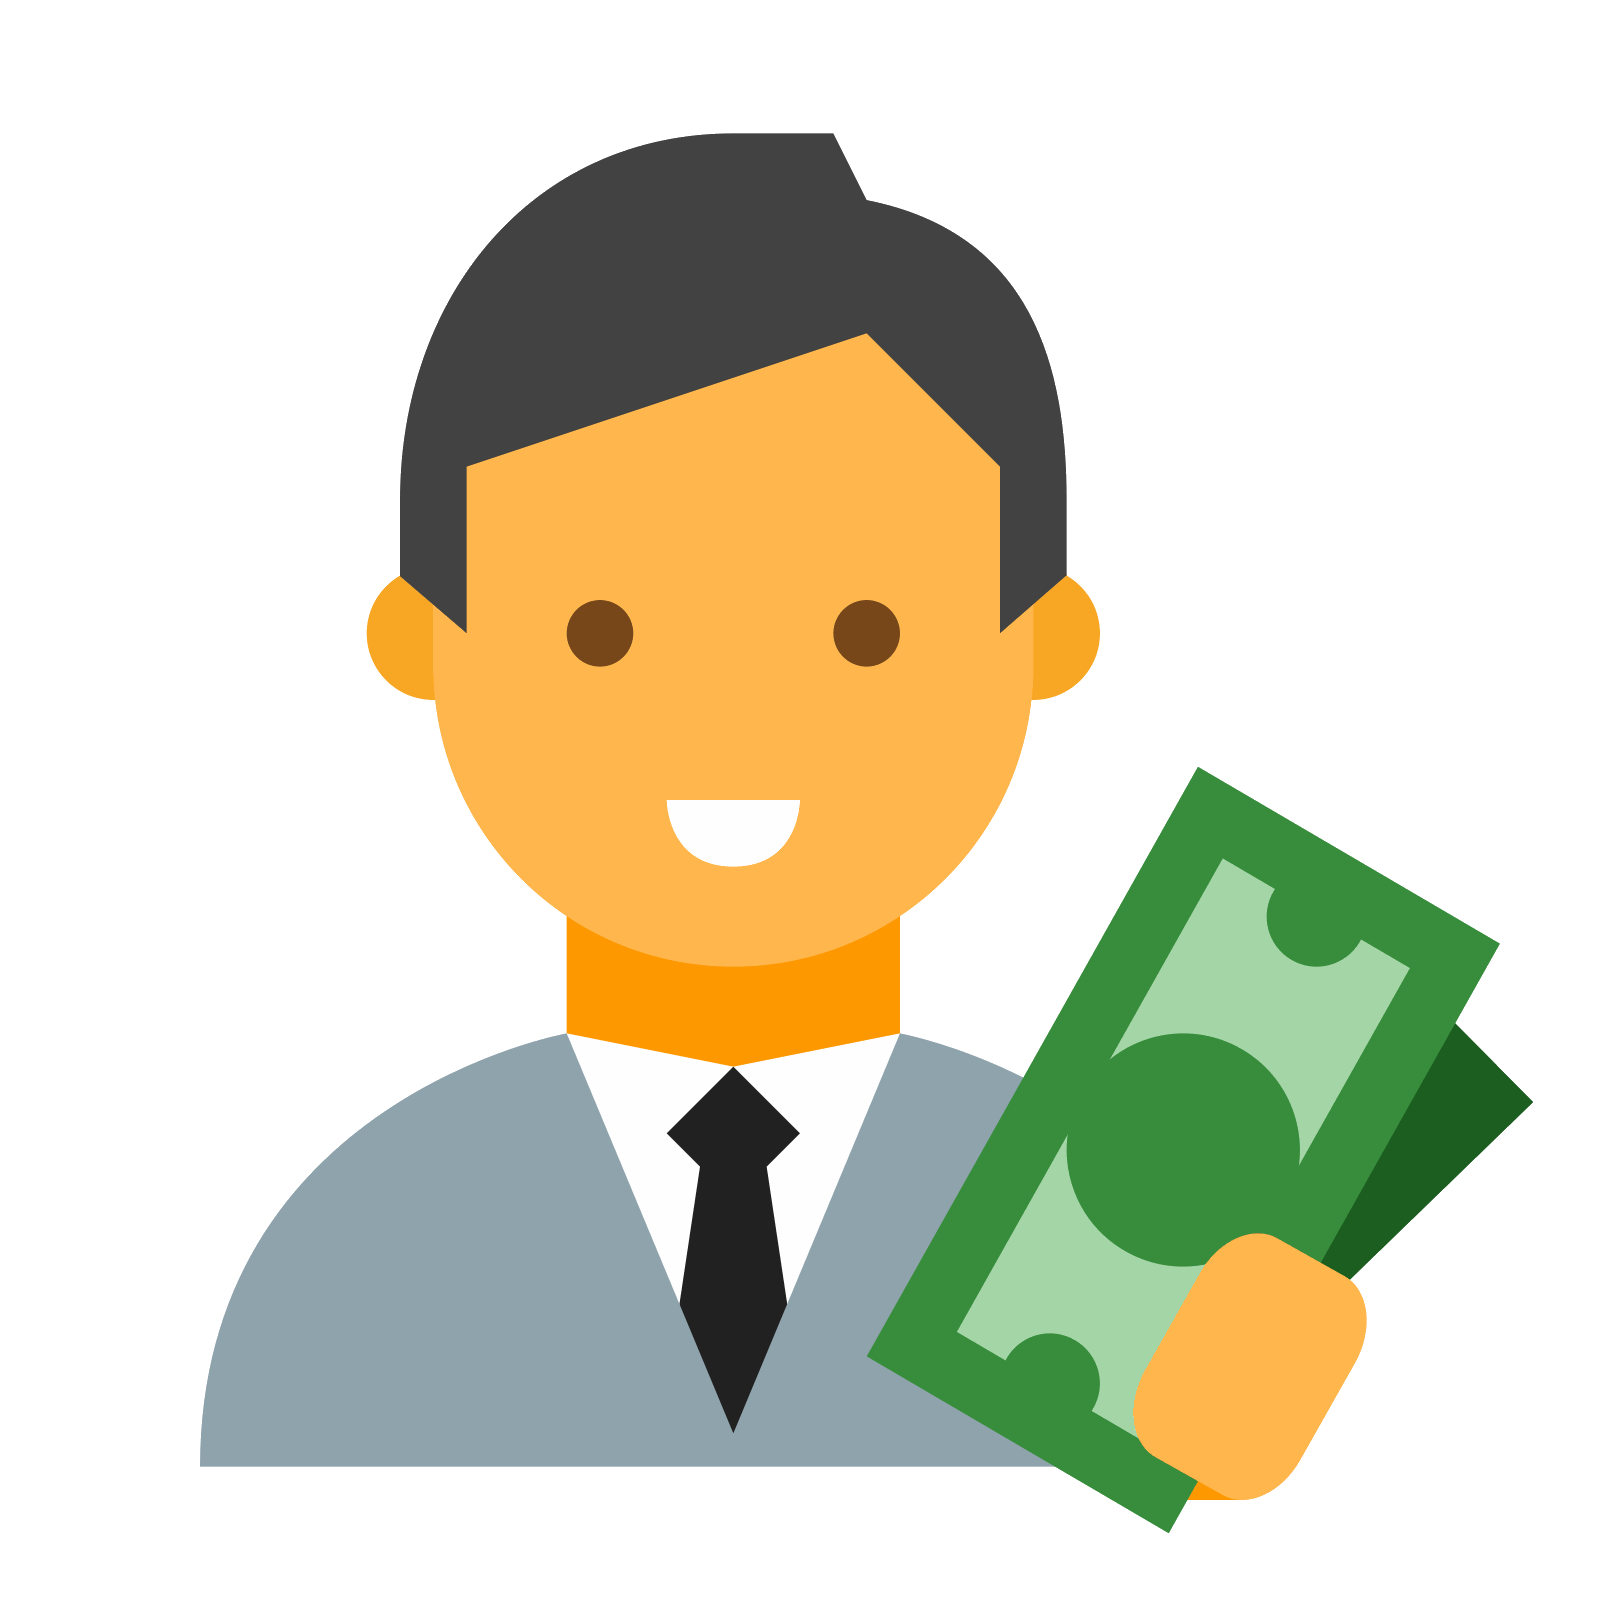 Icon free download png. Finance clipart budget project